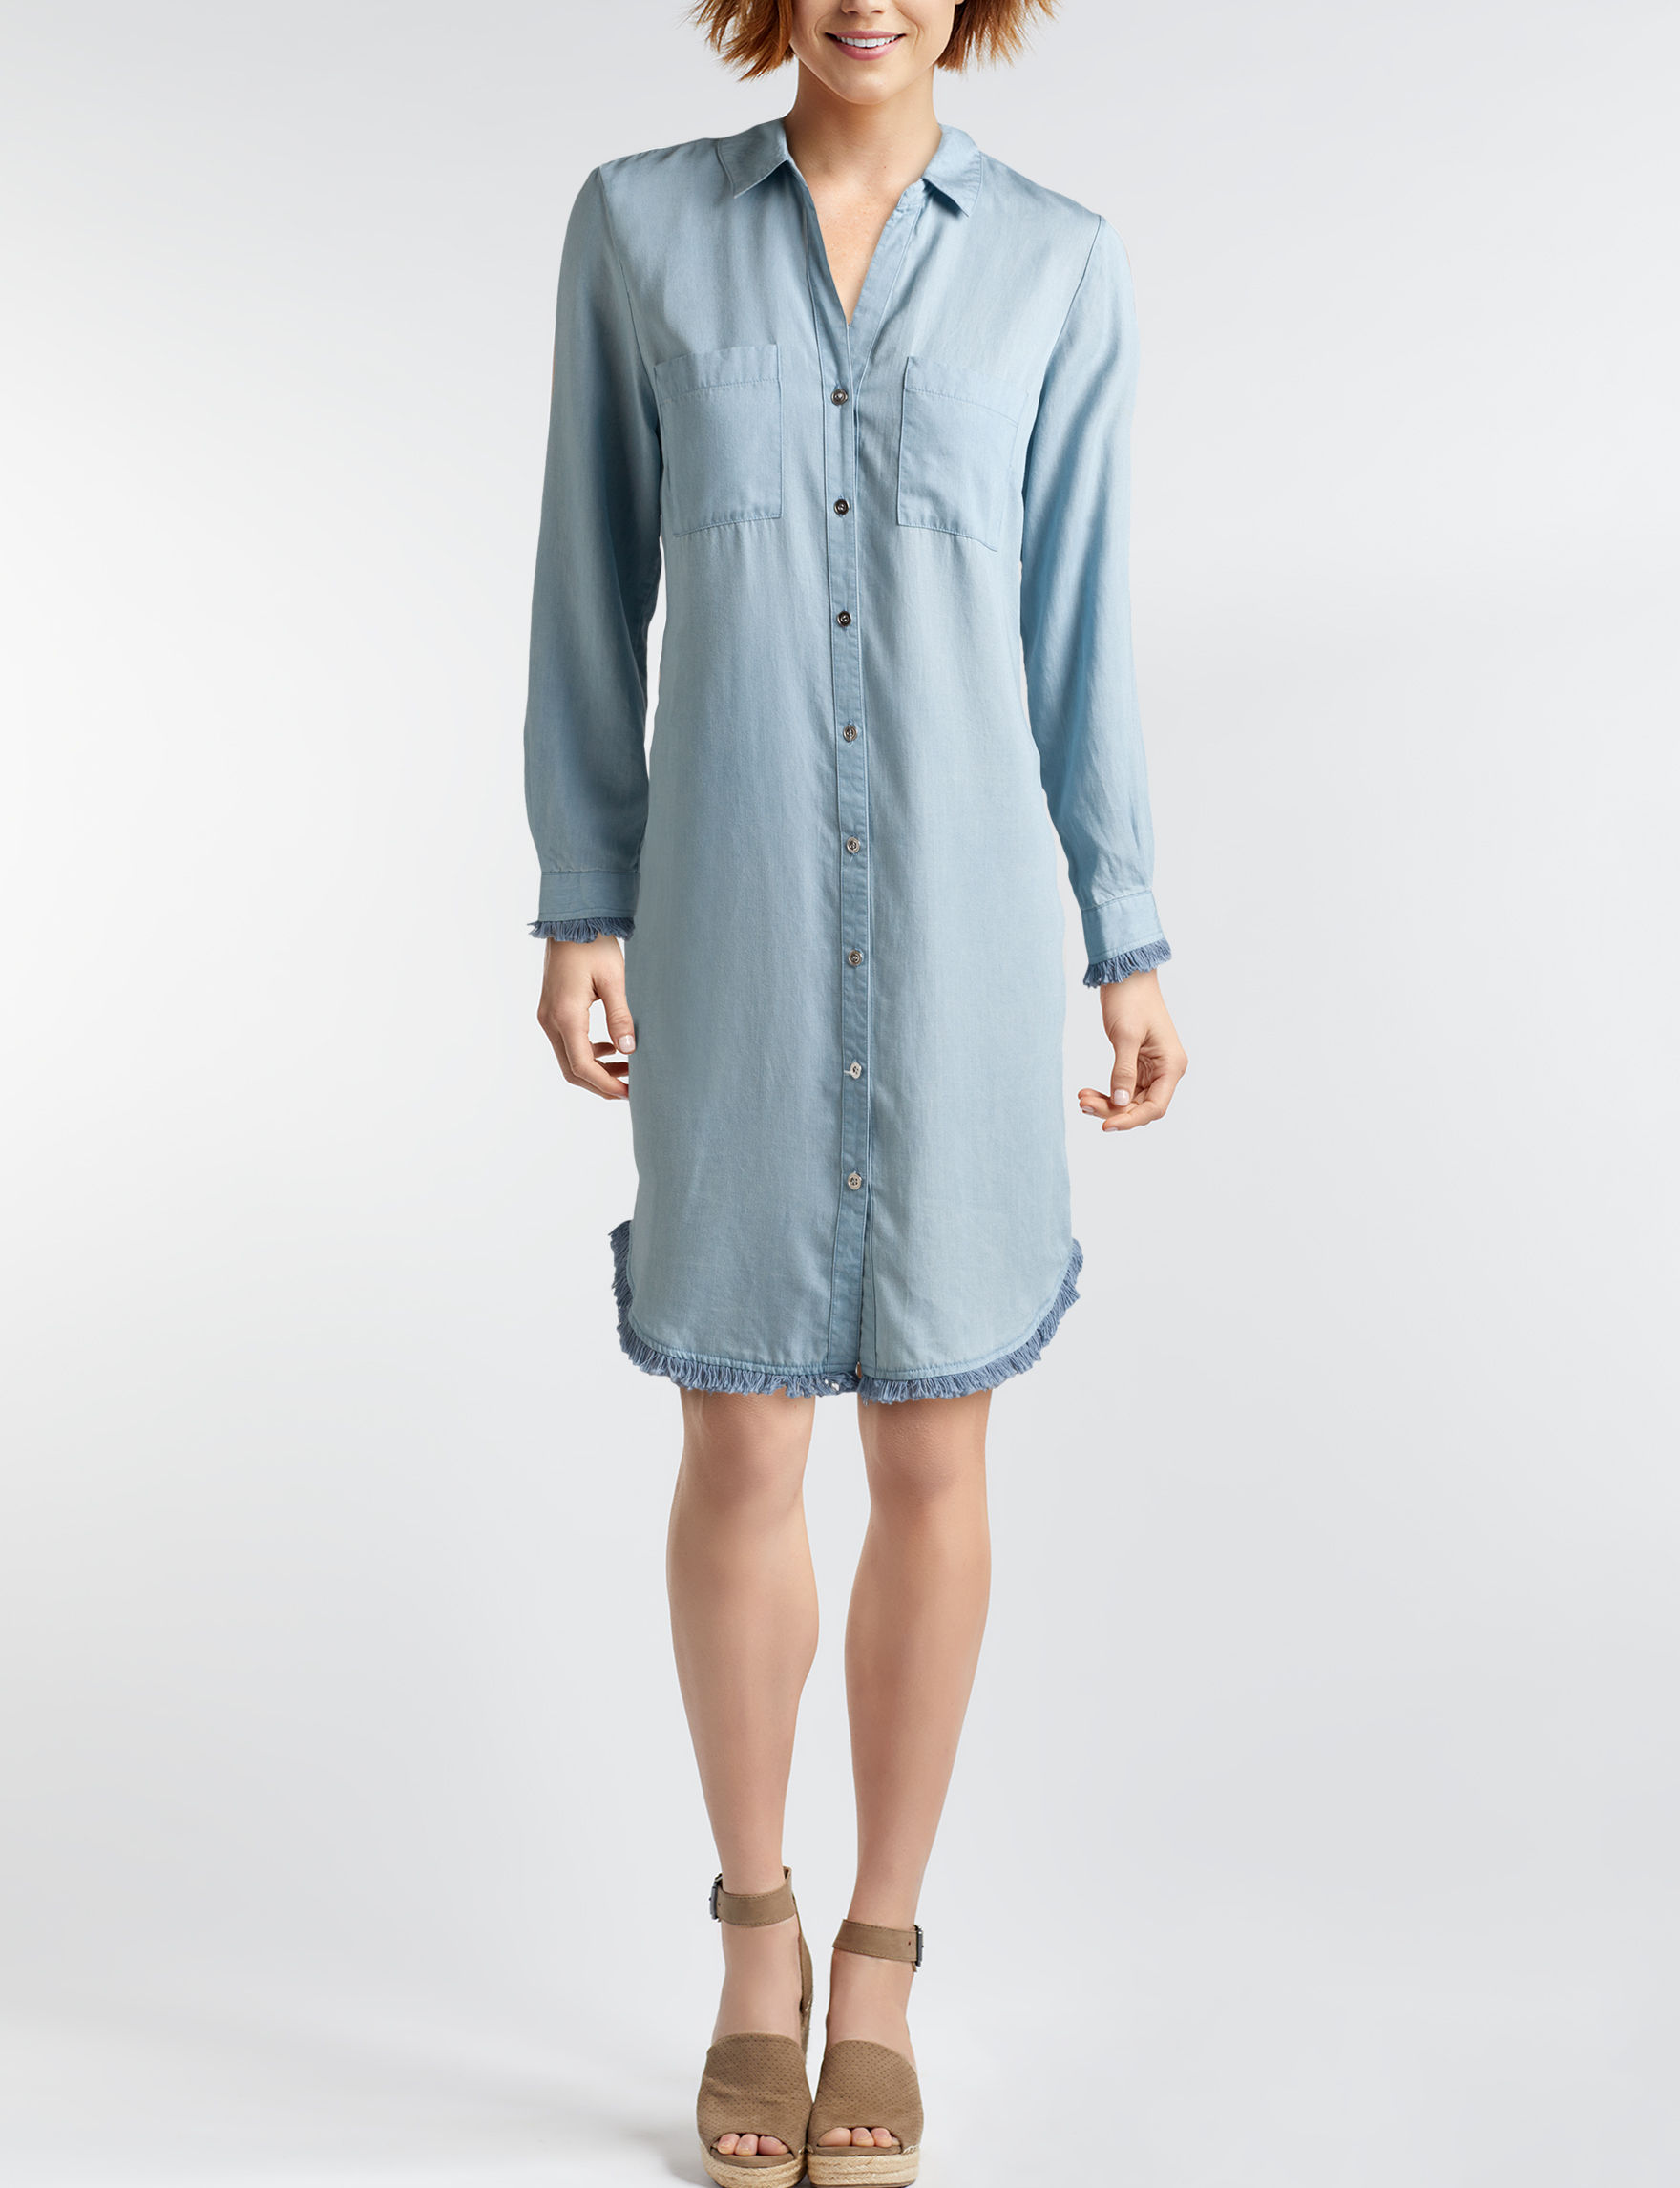 Hope & Harlow Chambray Everyday & Casual Shirt Dresses